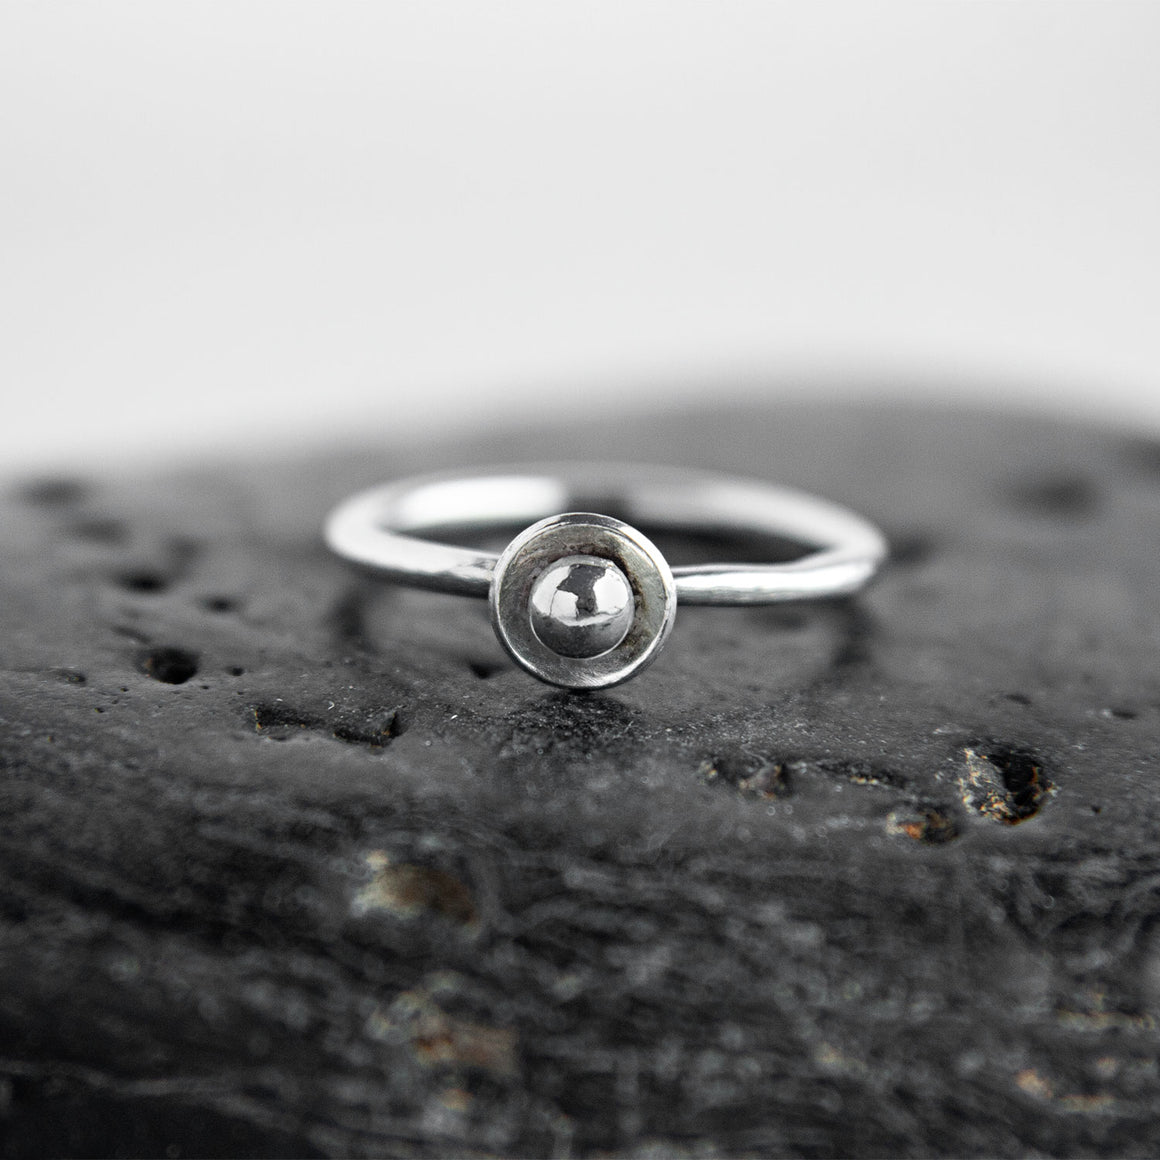 Olympia Sterling Silver Stacking Ring available at Micky Chase Jewelry